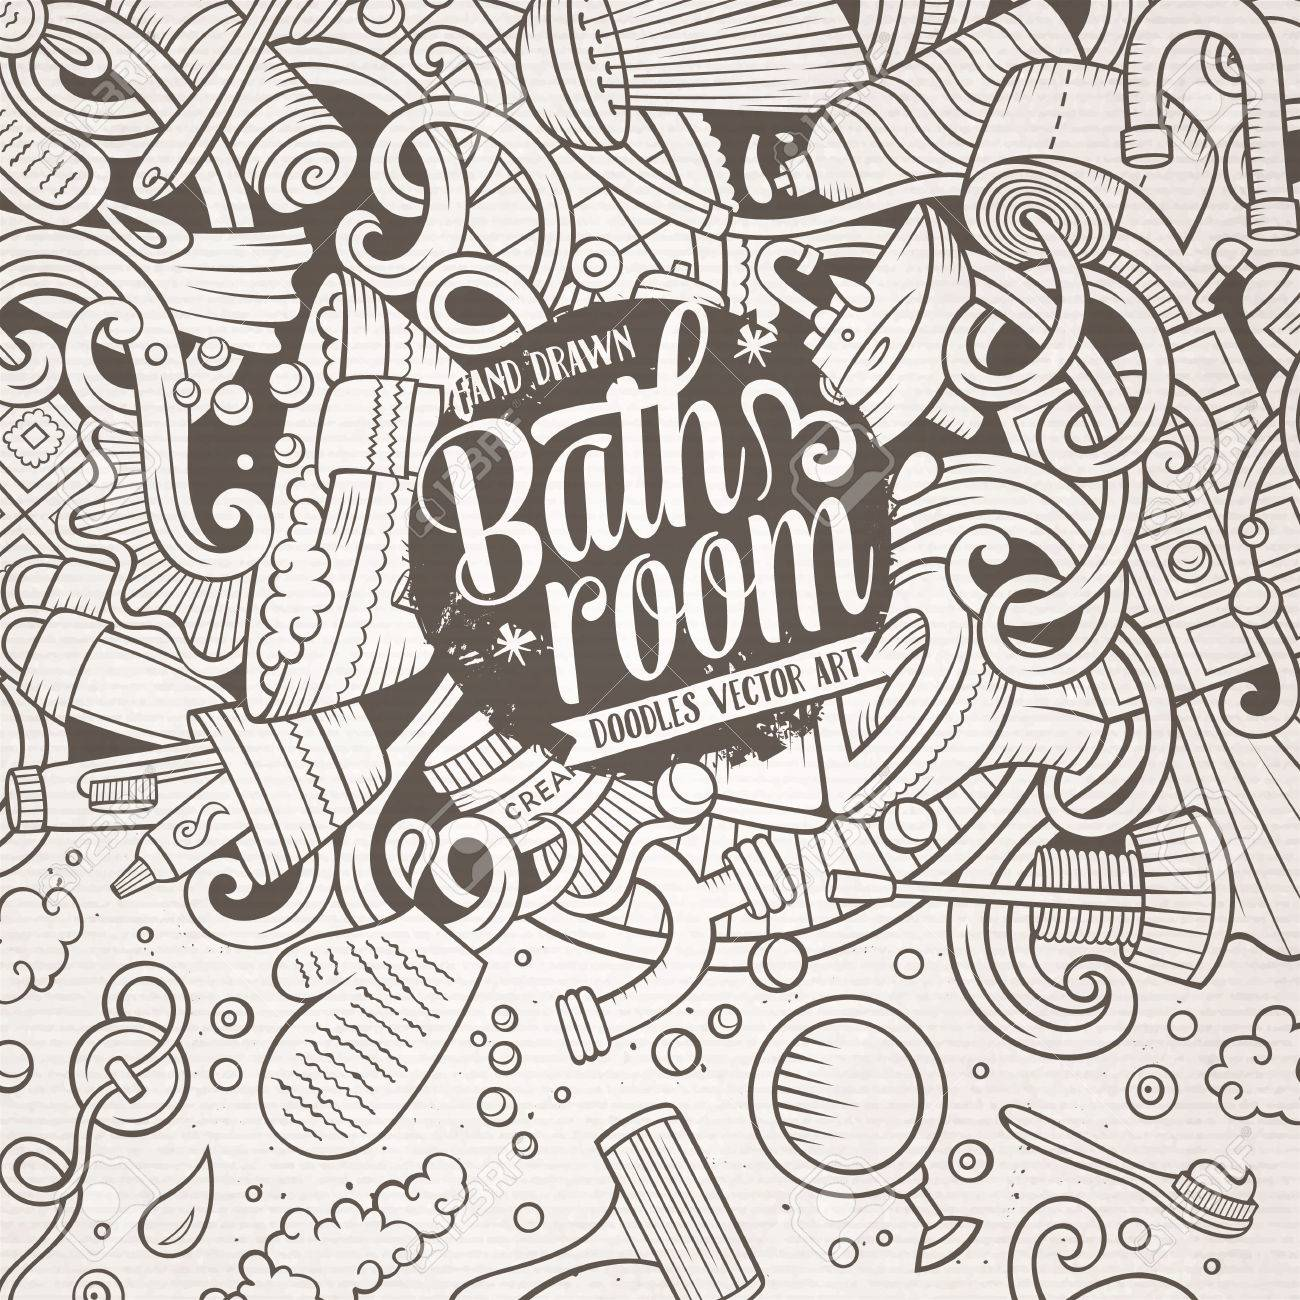 Cartoon Cute Doodles Hand Drawn Bathroom Frame Design Line Art Detailed With Lots Of